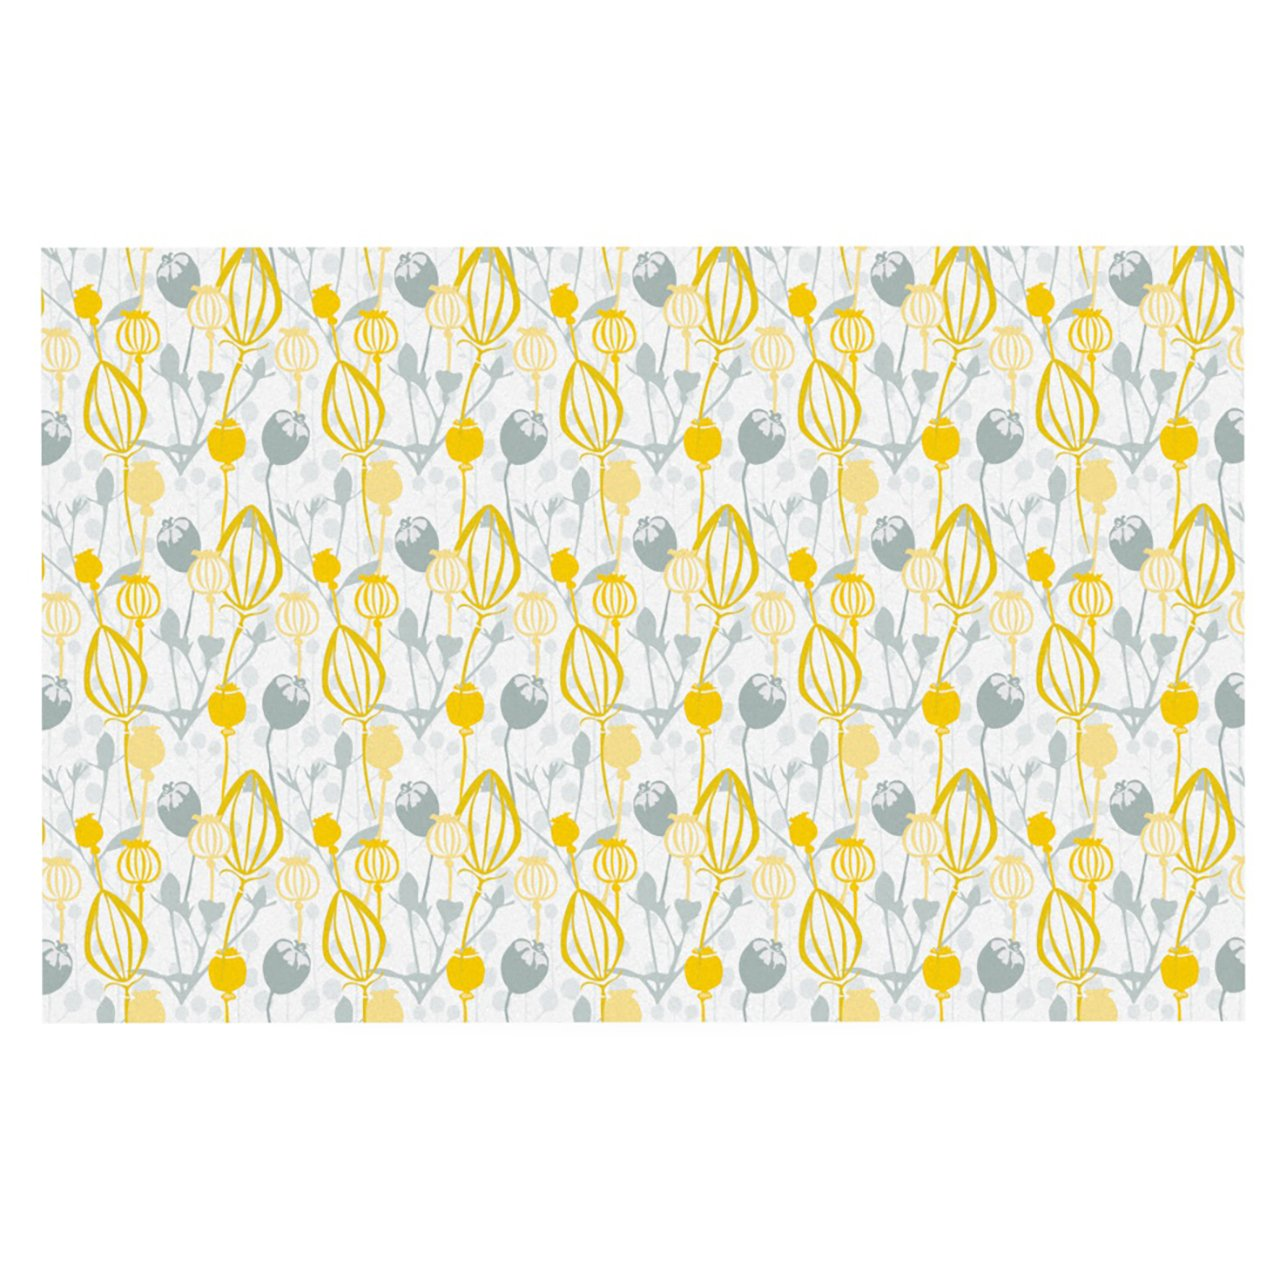 Kess InHouse Julie Hamilton ''Willow Wisp'' Yellow Gray Feeding Mat for Pet Bowl, 18 by 13-Inch